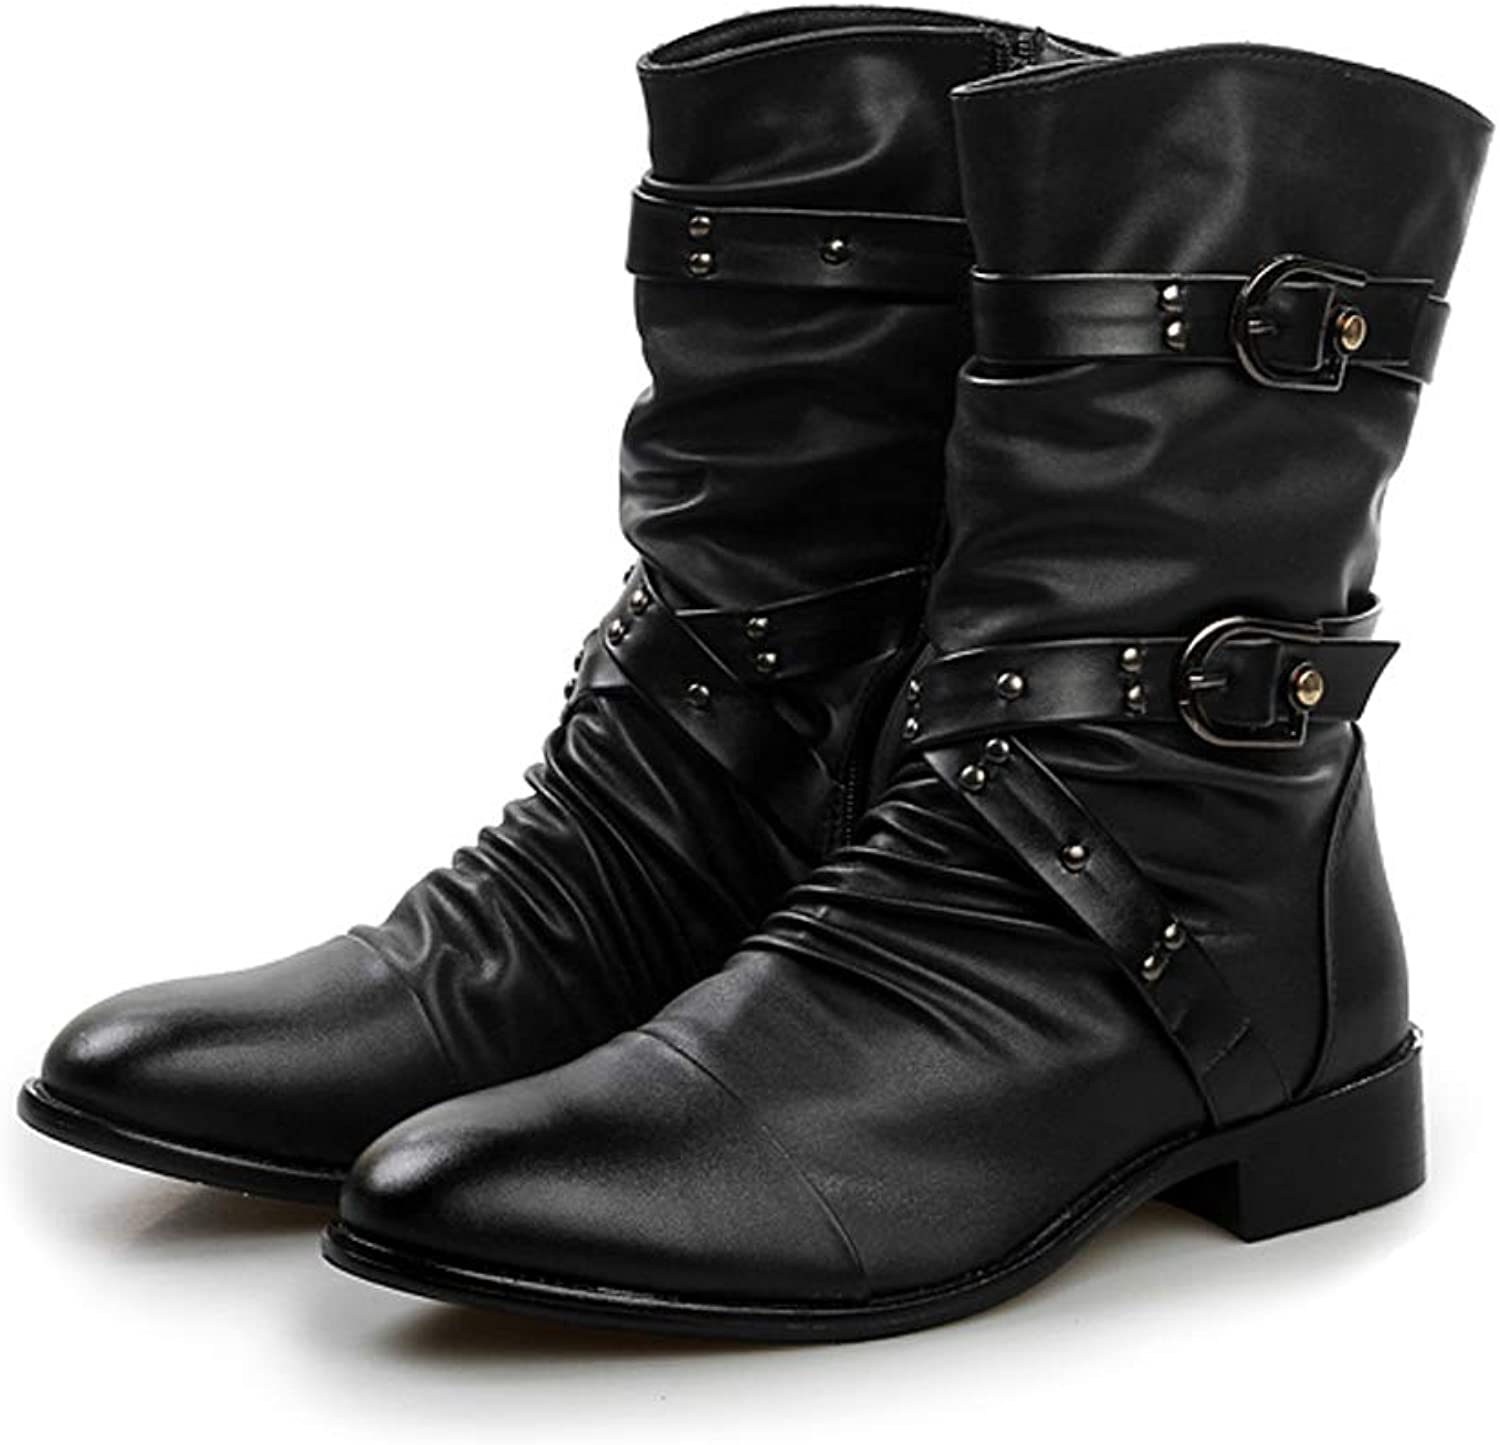 Sunny&Baby Men's Combat Mid-Calf Boots Belt Buckle Slouchy Genuine Leather Vamp Style Ankle Military Motorcycle shoes Durable